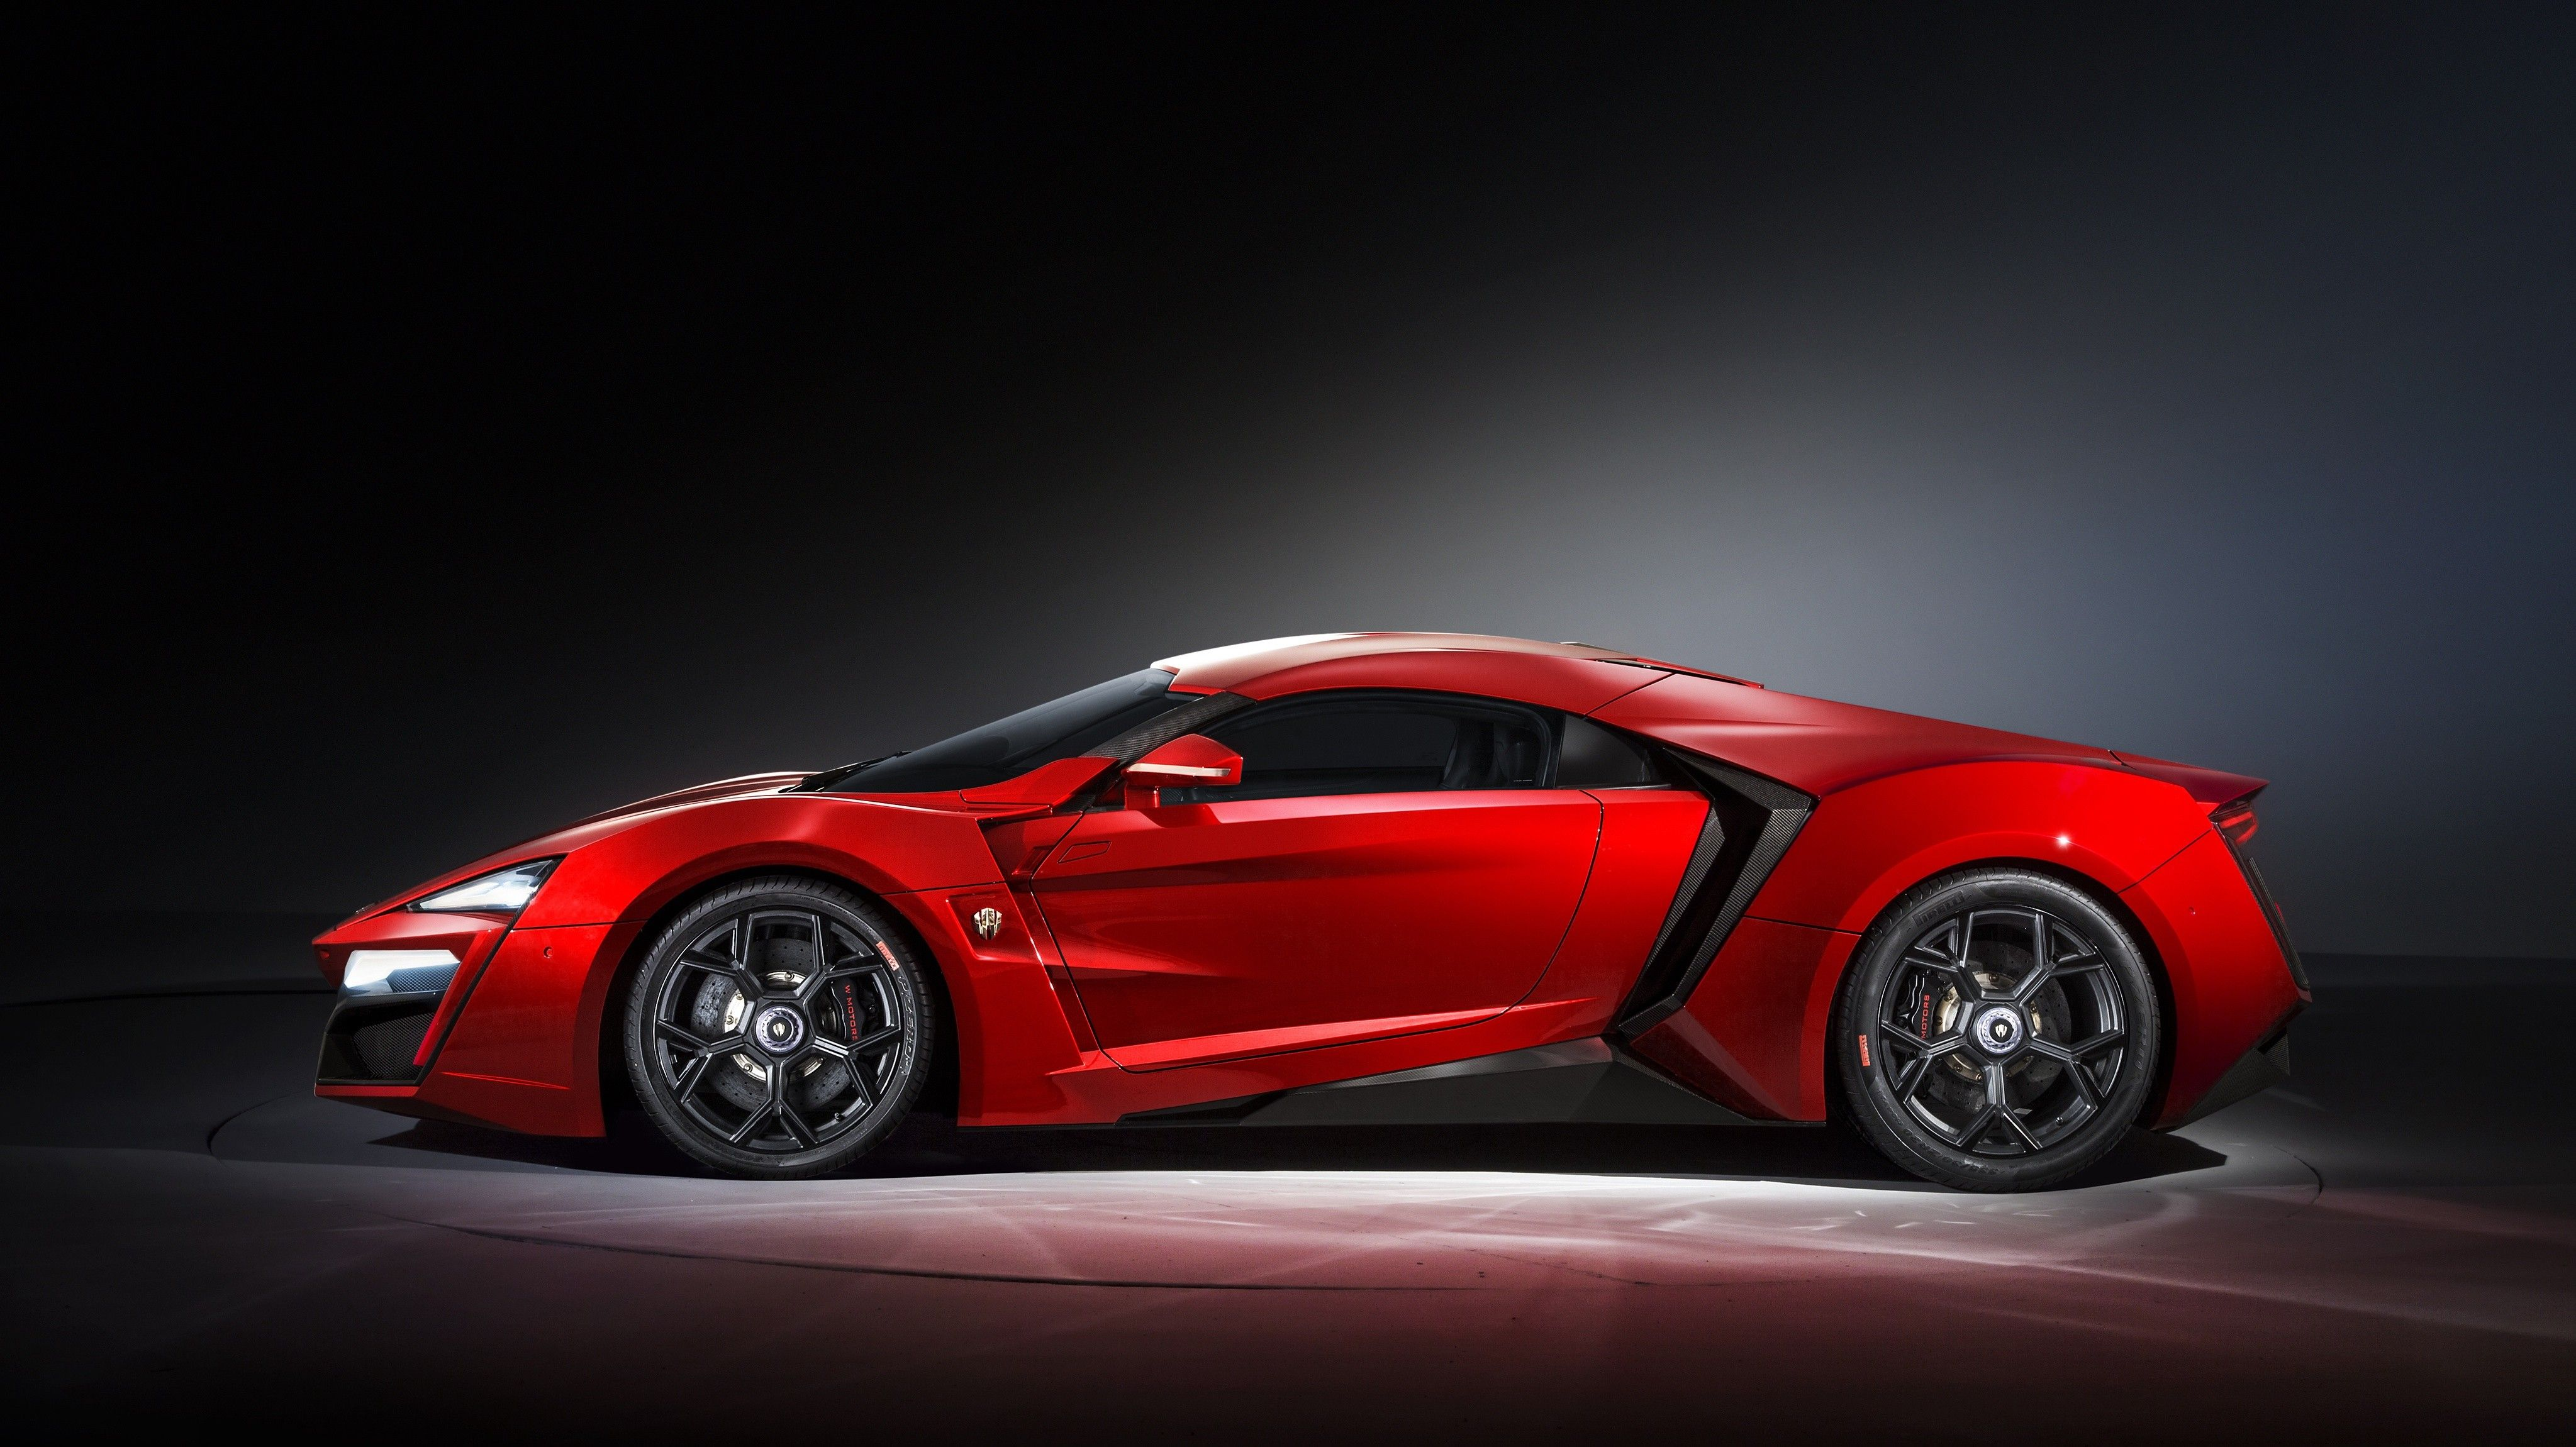 General 4095x2301 Car Super Car Lykan Hypersport Red Cars Side View